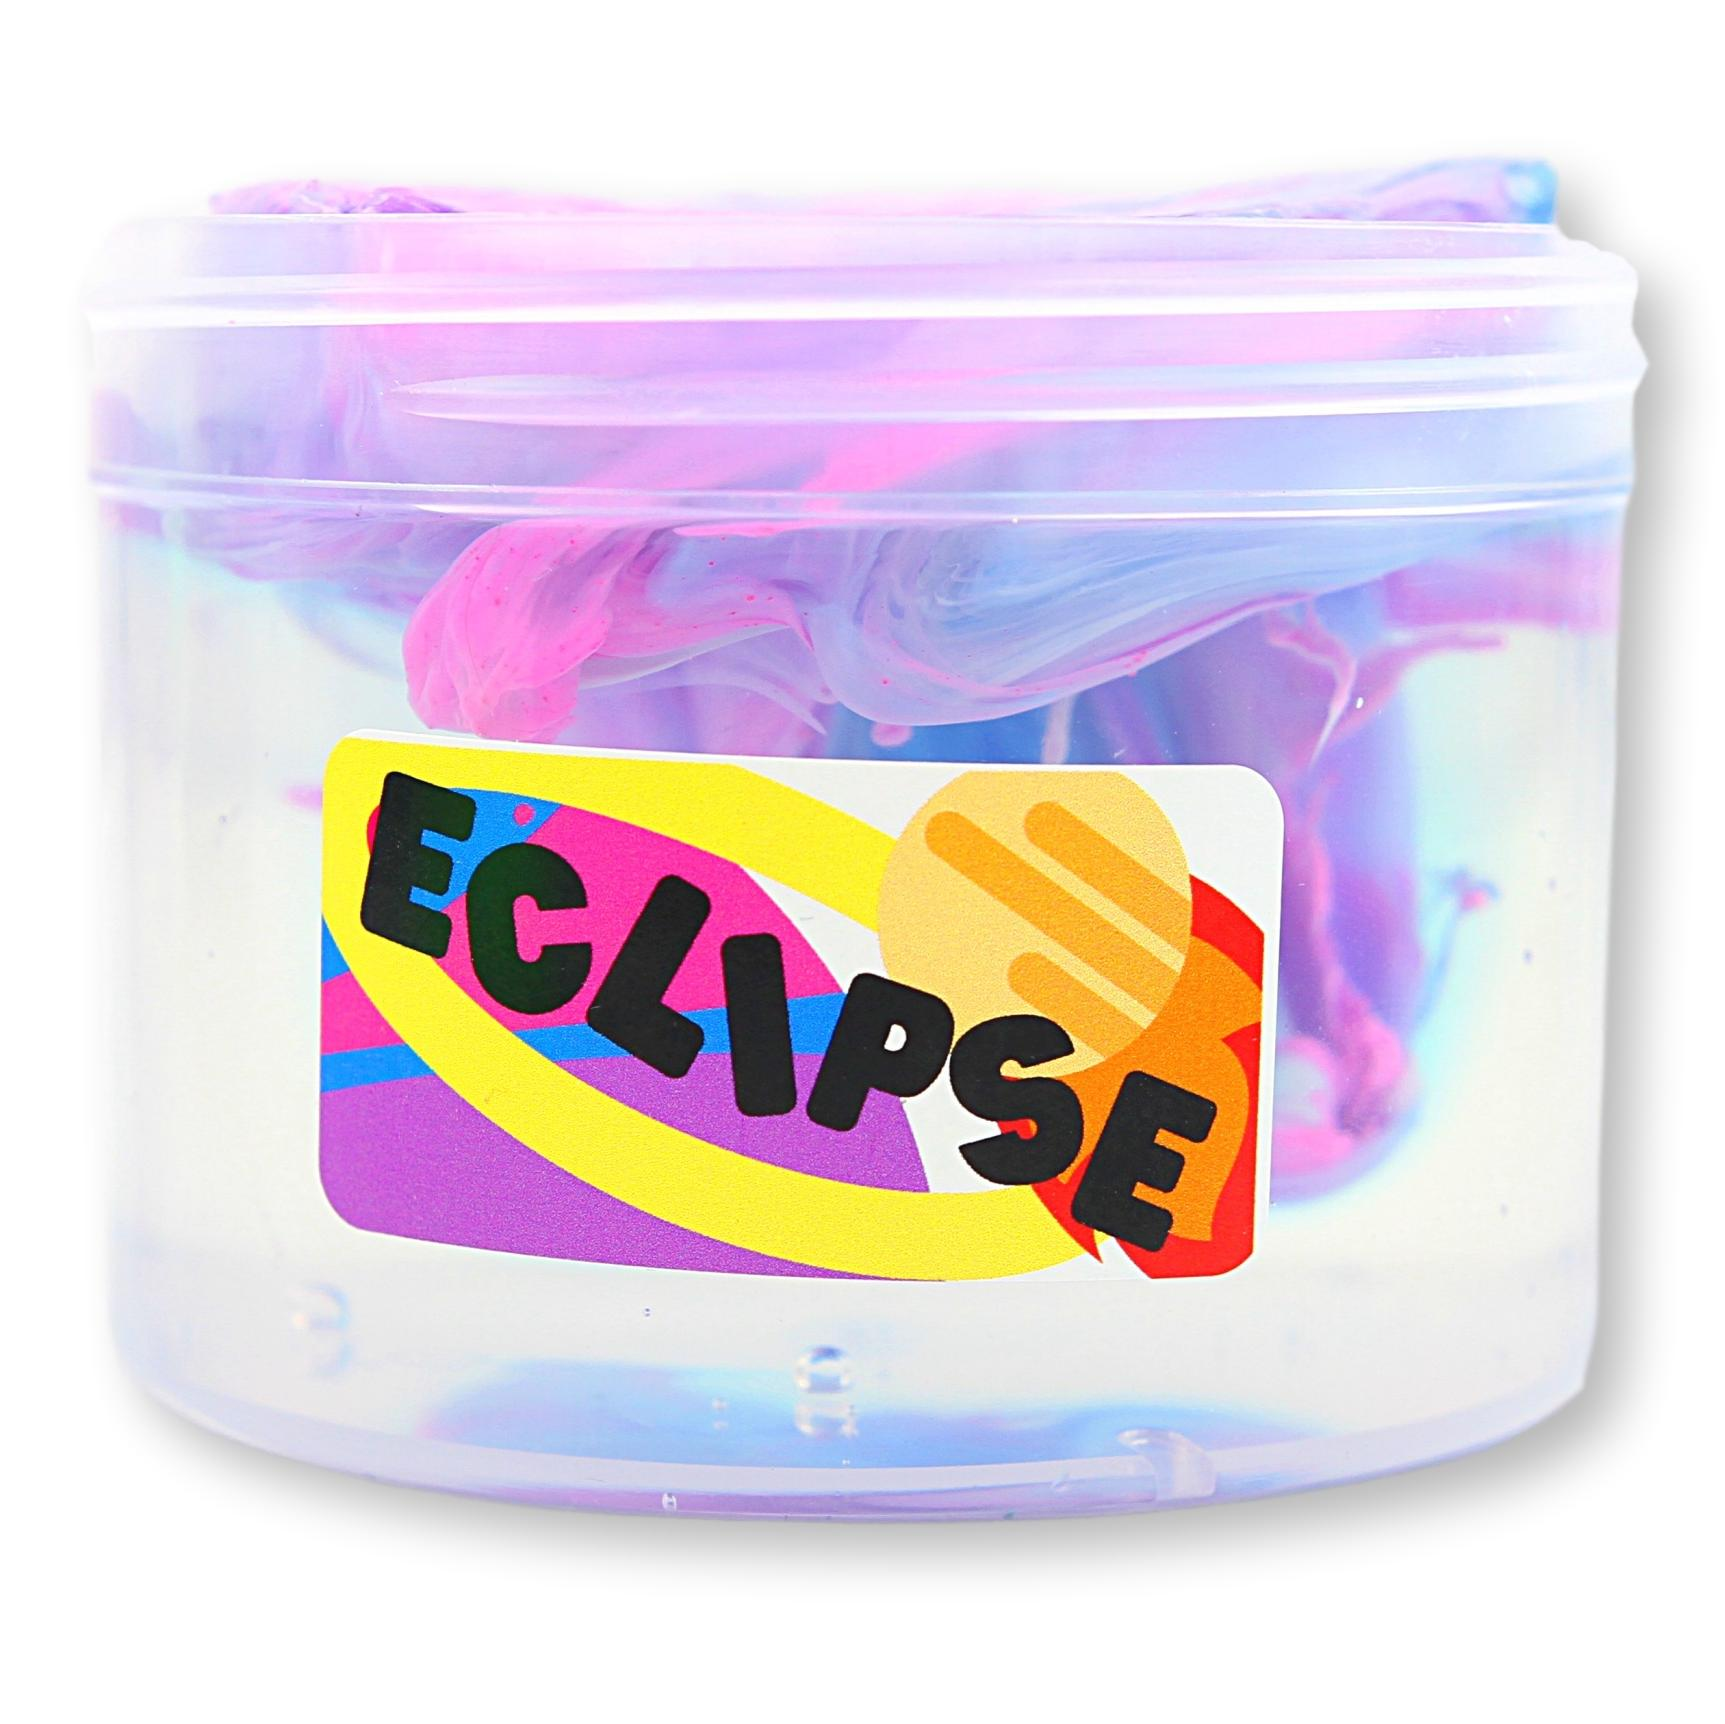 Eclipse Clear Avalanche Slime - Shop Slime - Dope Slimes